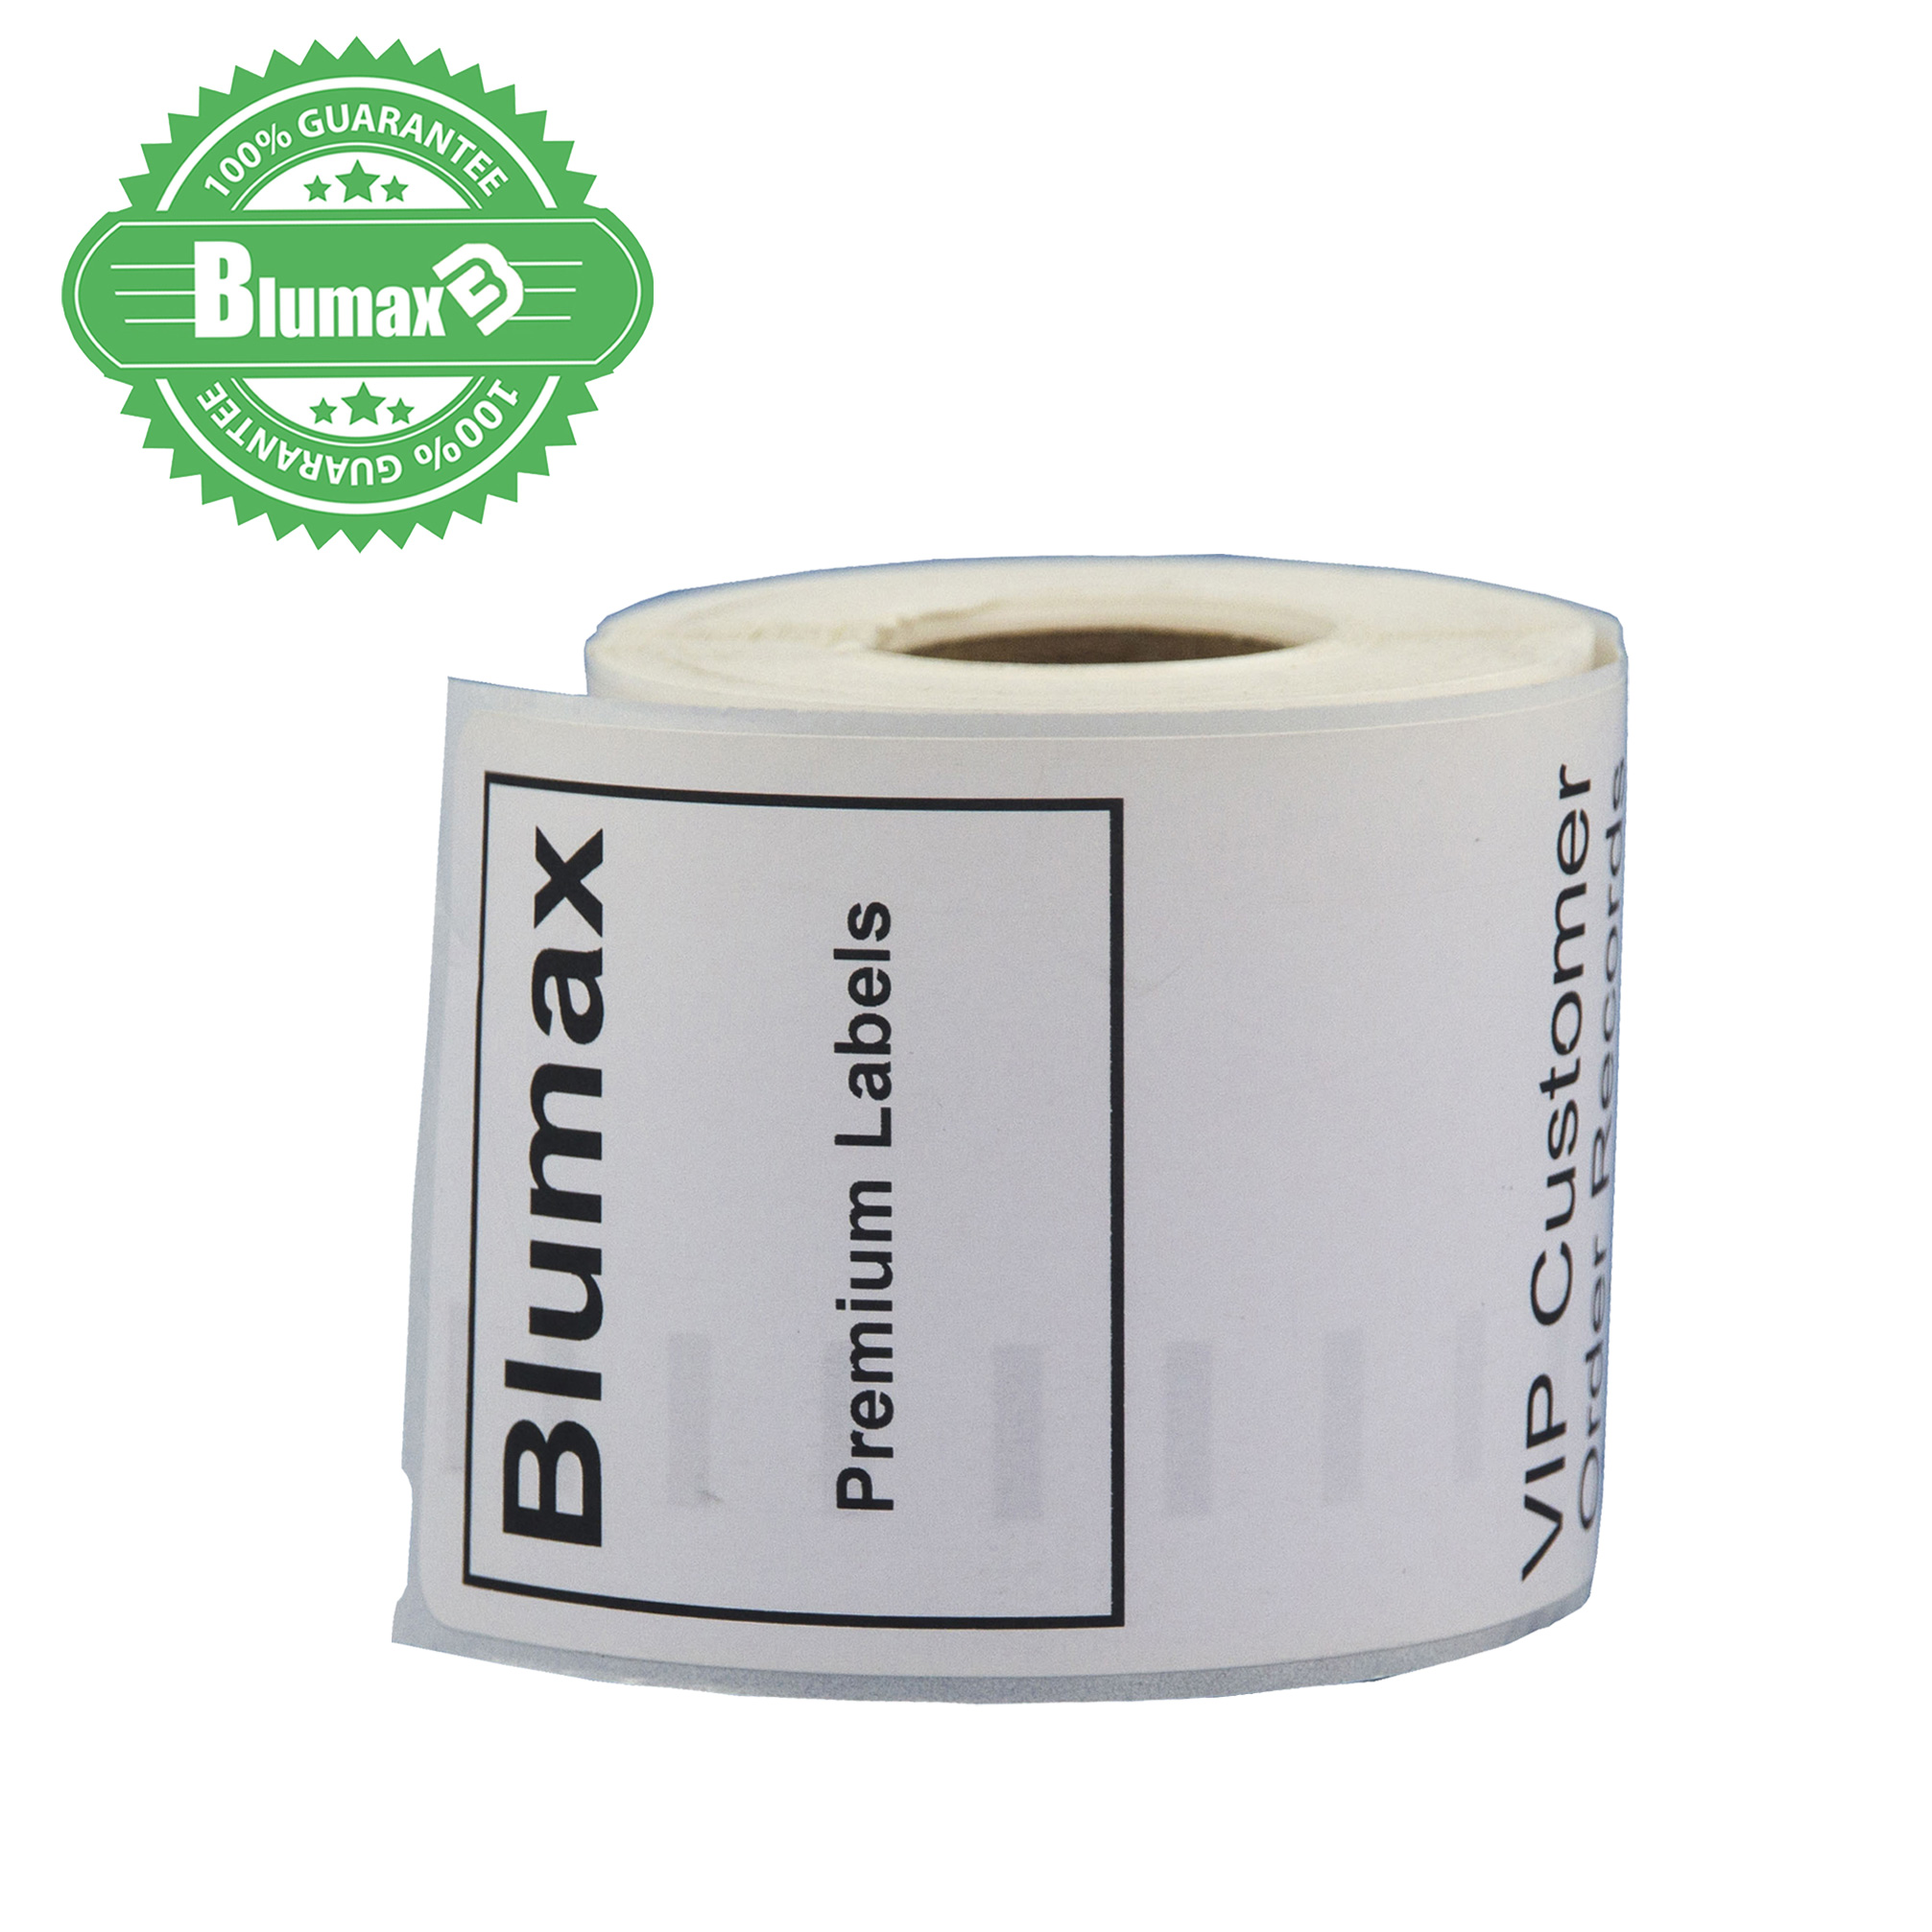 12 Blumax Compatible for Dymo SD99019 File Folder Label